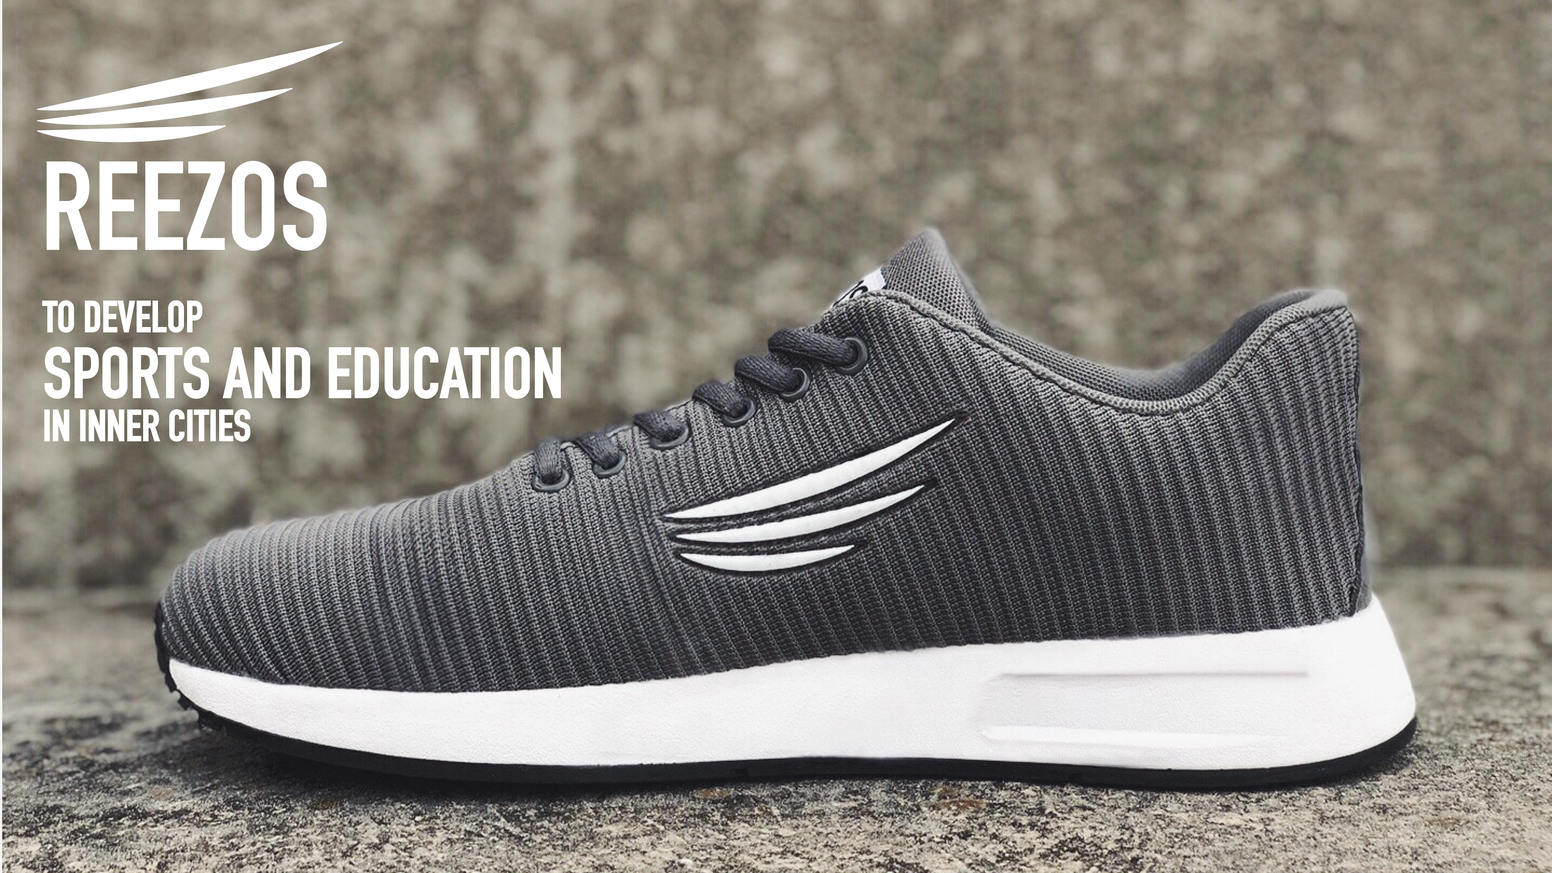 Introducing Reezos - a shoe brand committed to developing sports and education for inner city youth